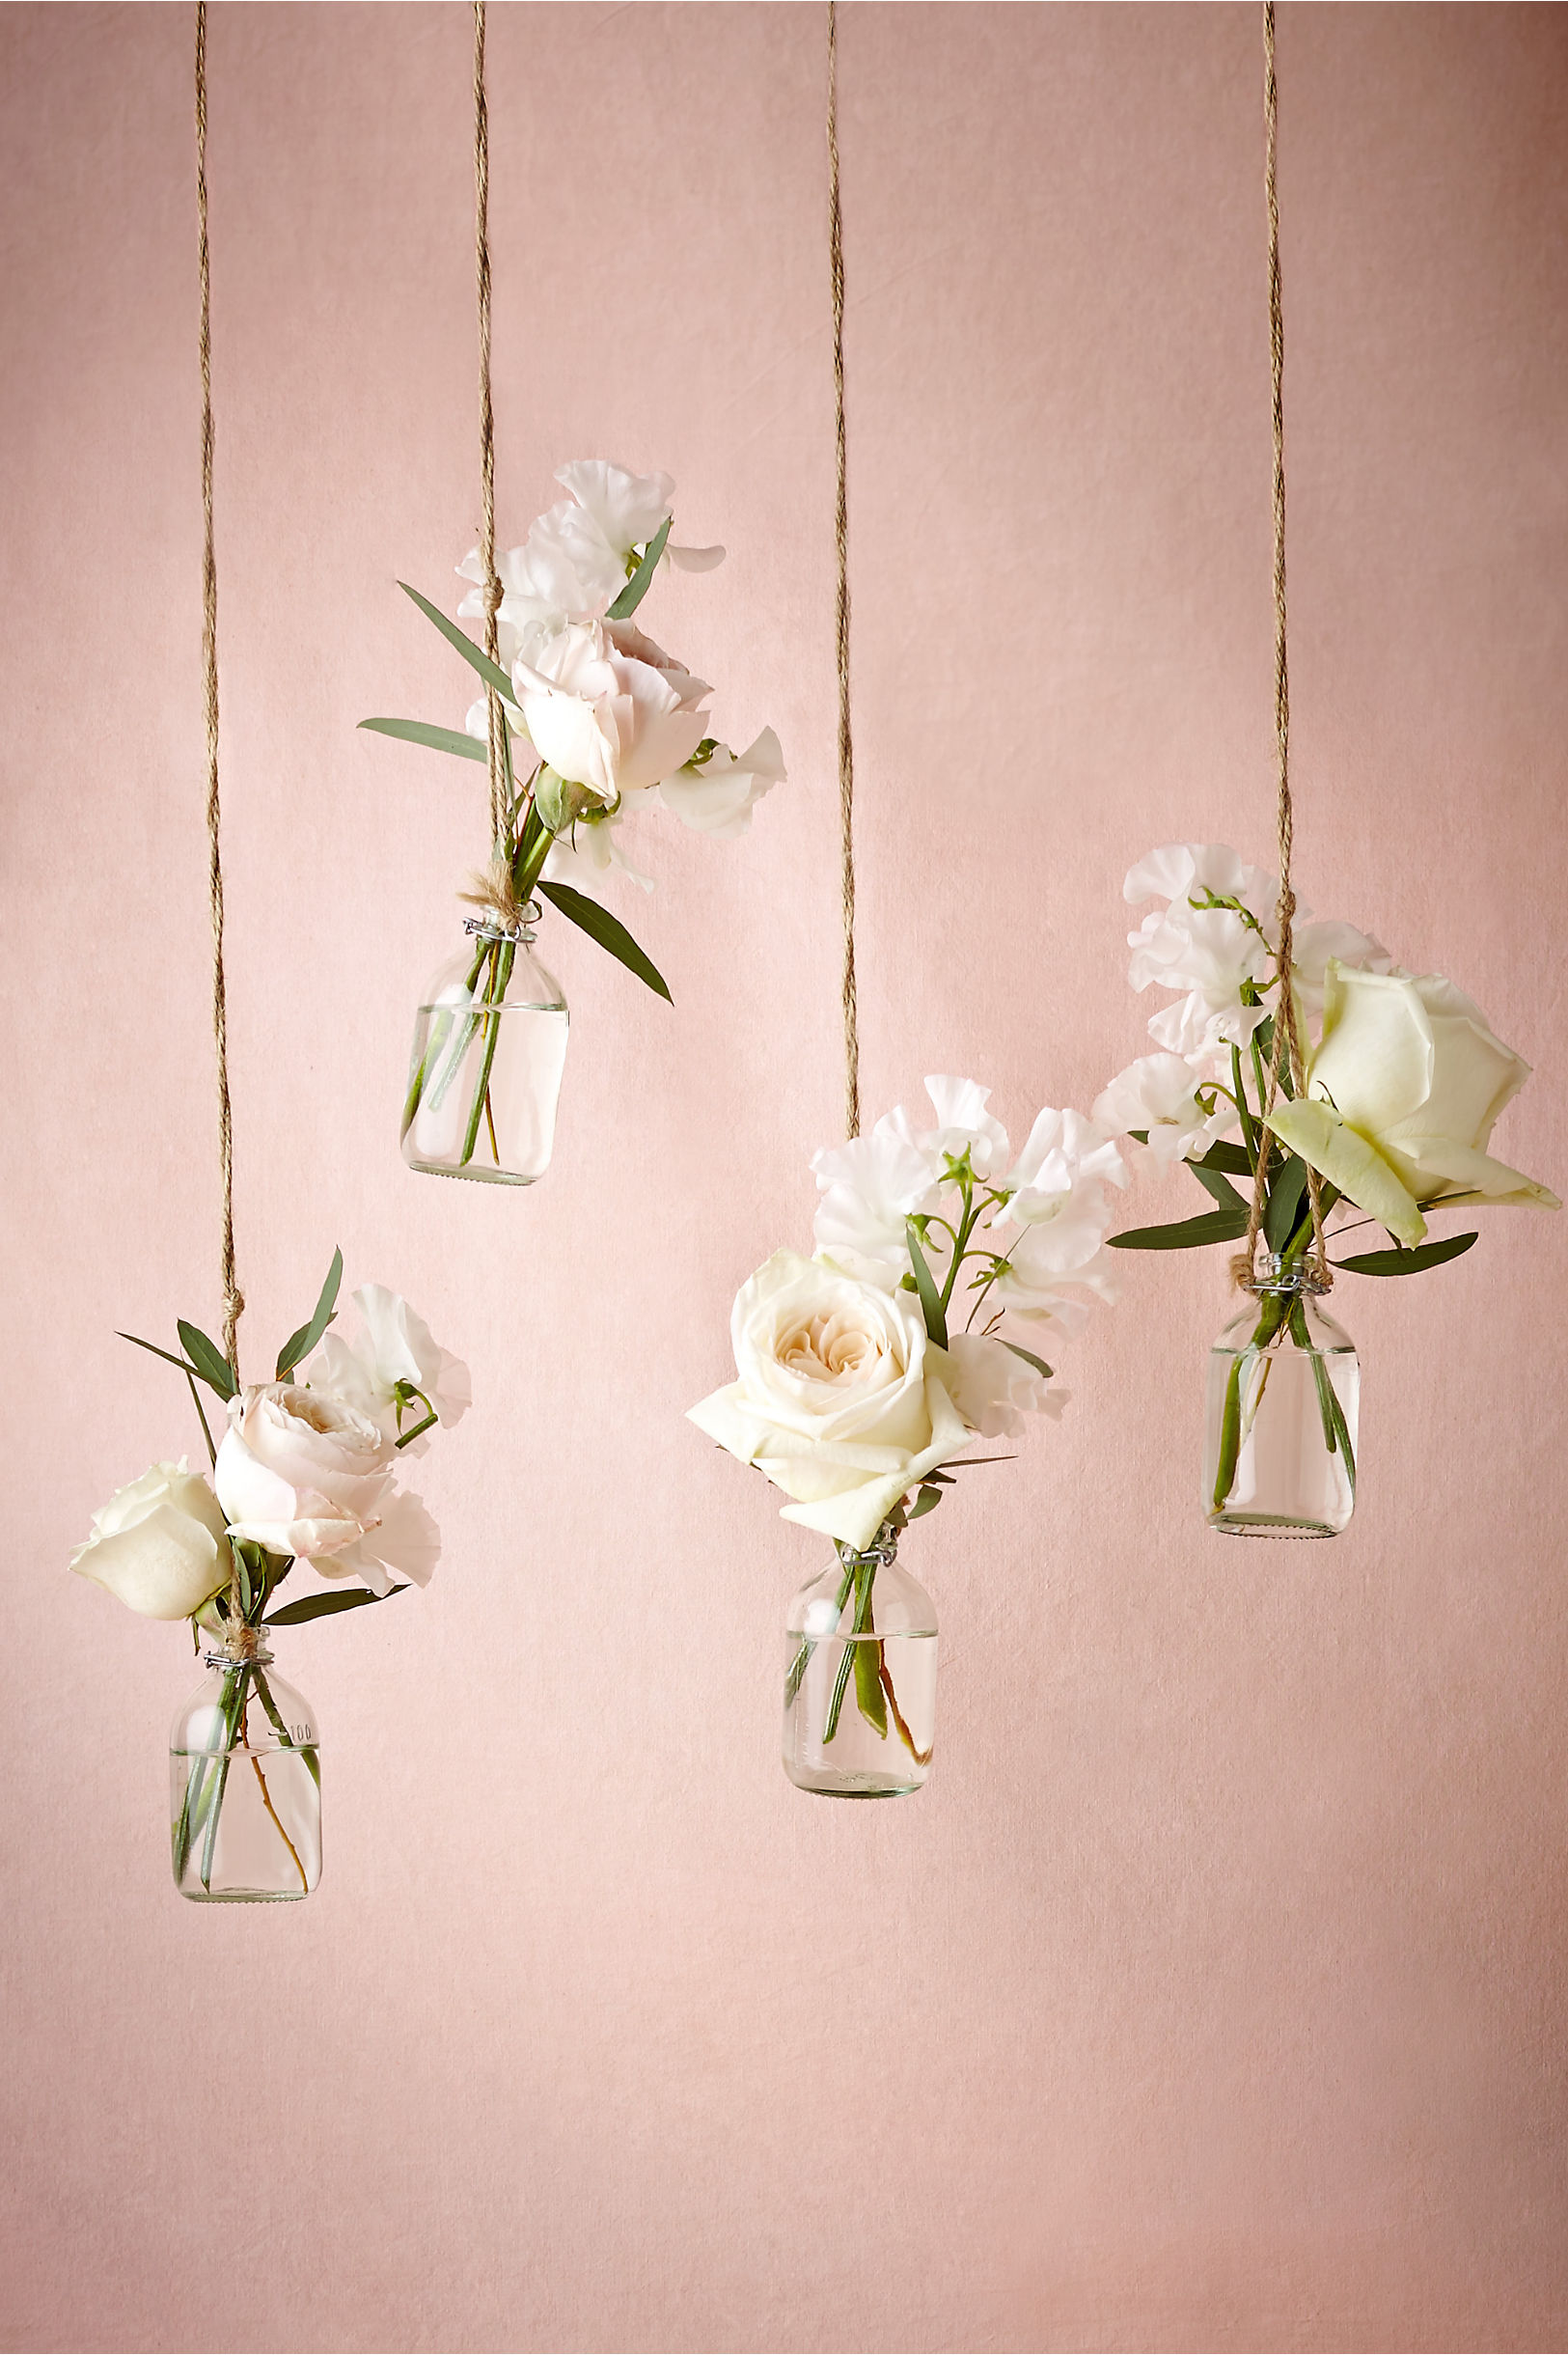 4ec6605e5645 Hanging bud vases in front of a pink wall as an idea for bridal shower  decorations